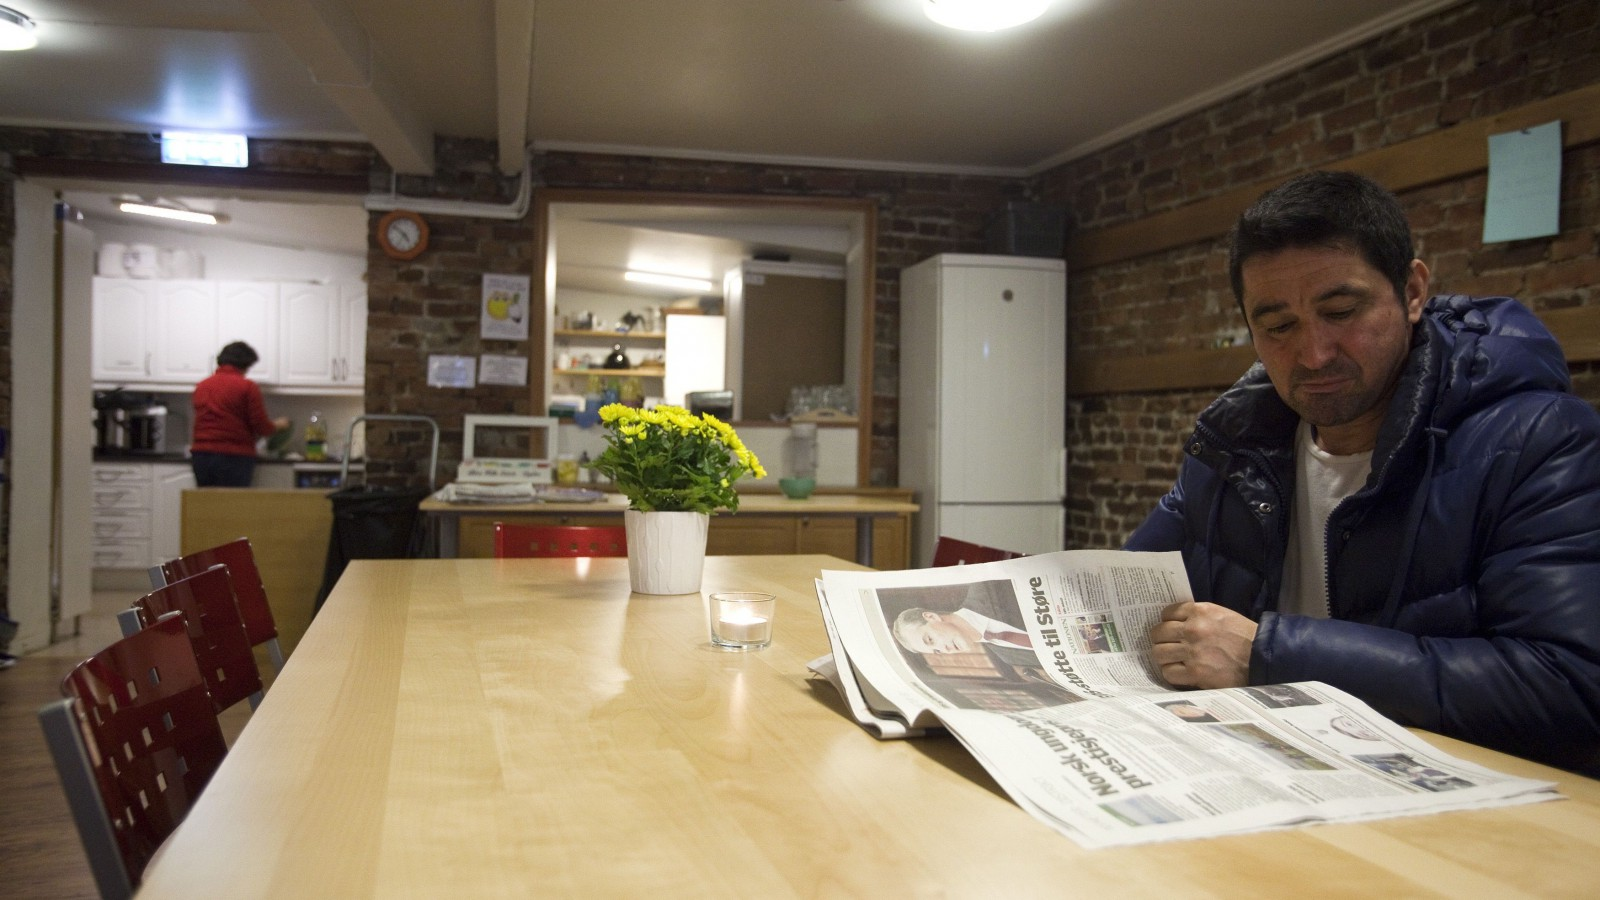 An immigrant from Spain, reads a newspaper at Robin Hood House, a centre that provides services to the economically disadvantaged